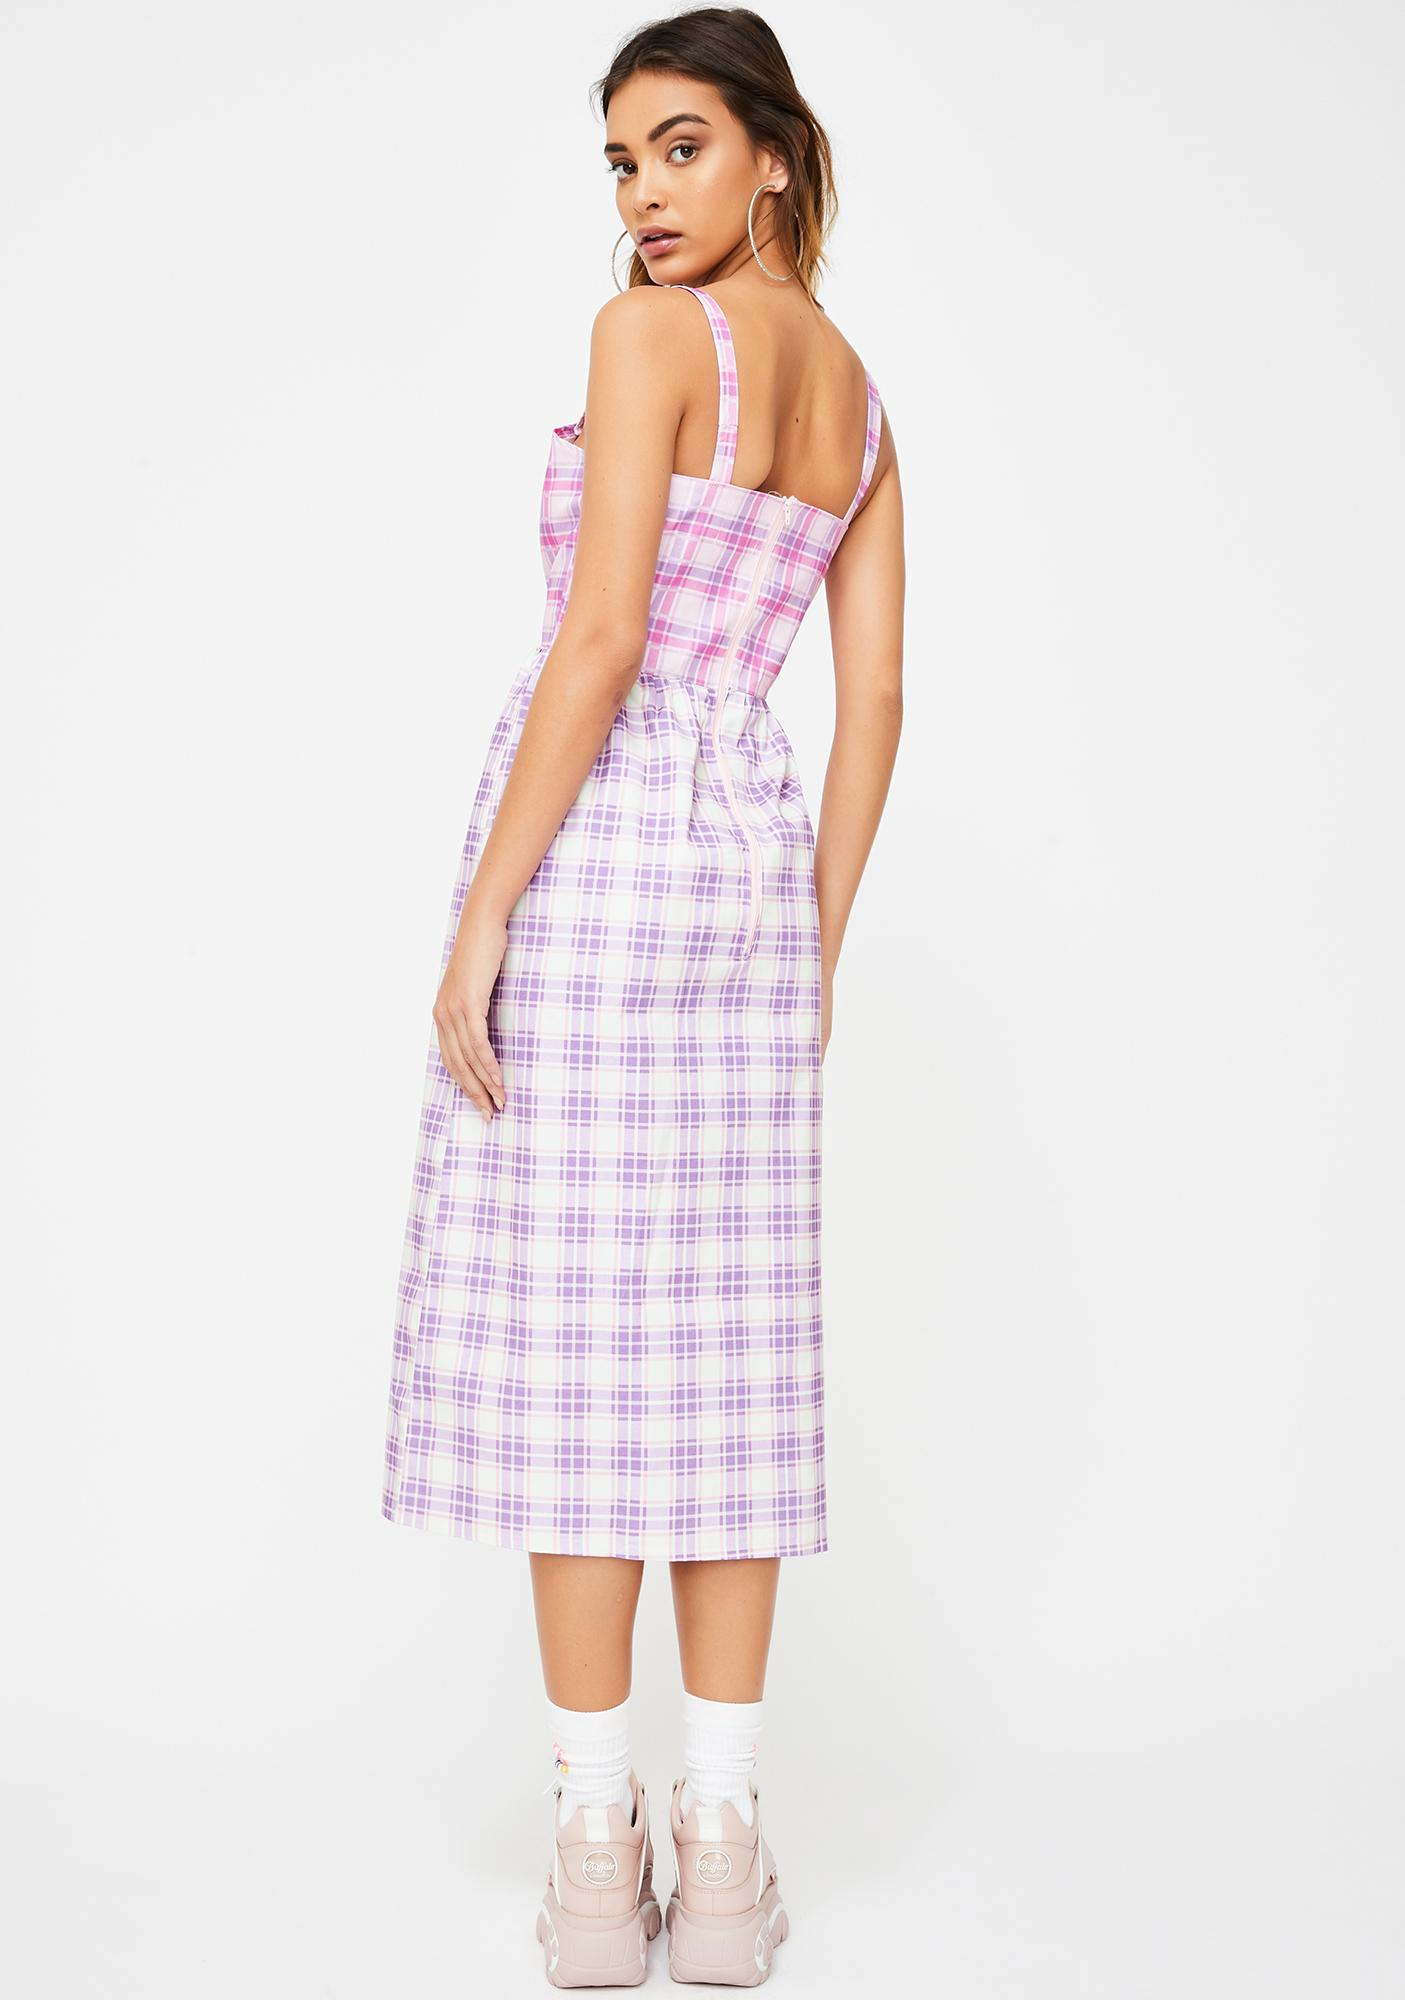 JUNGLECLUB CLOTHING Gingham Tank Midi Dress